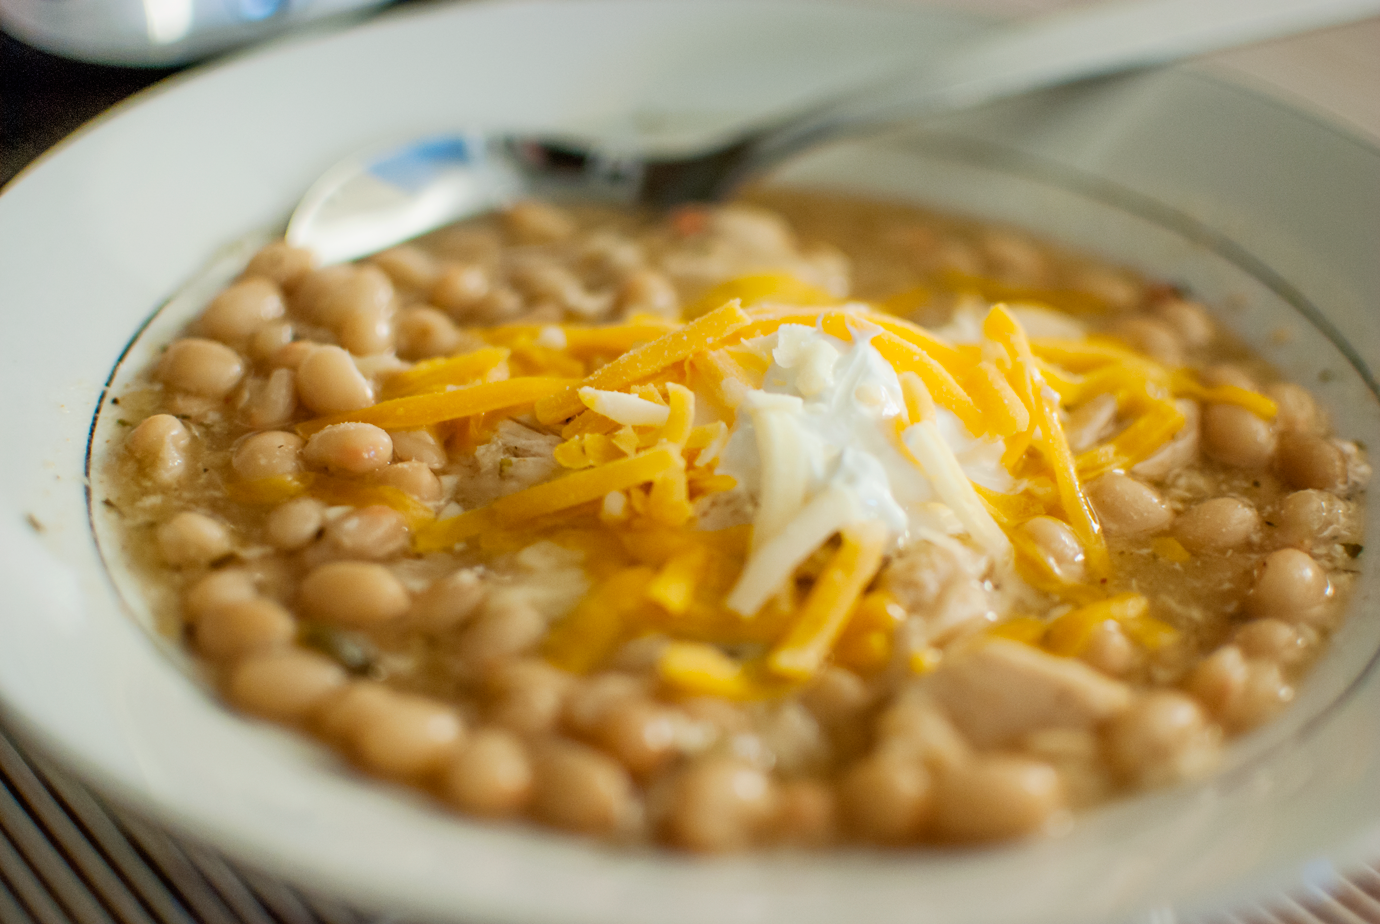 Bowl of White Bean Chicken Chili With Sour Cream and Shredded Cheese